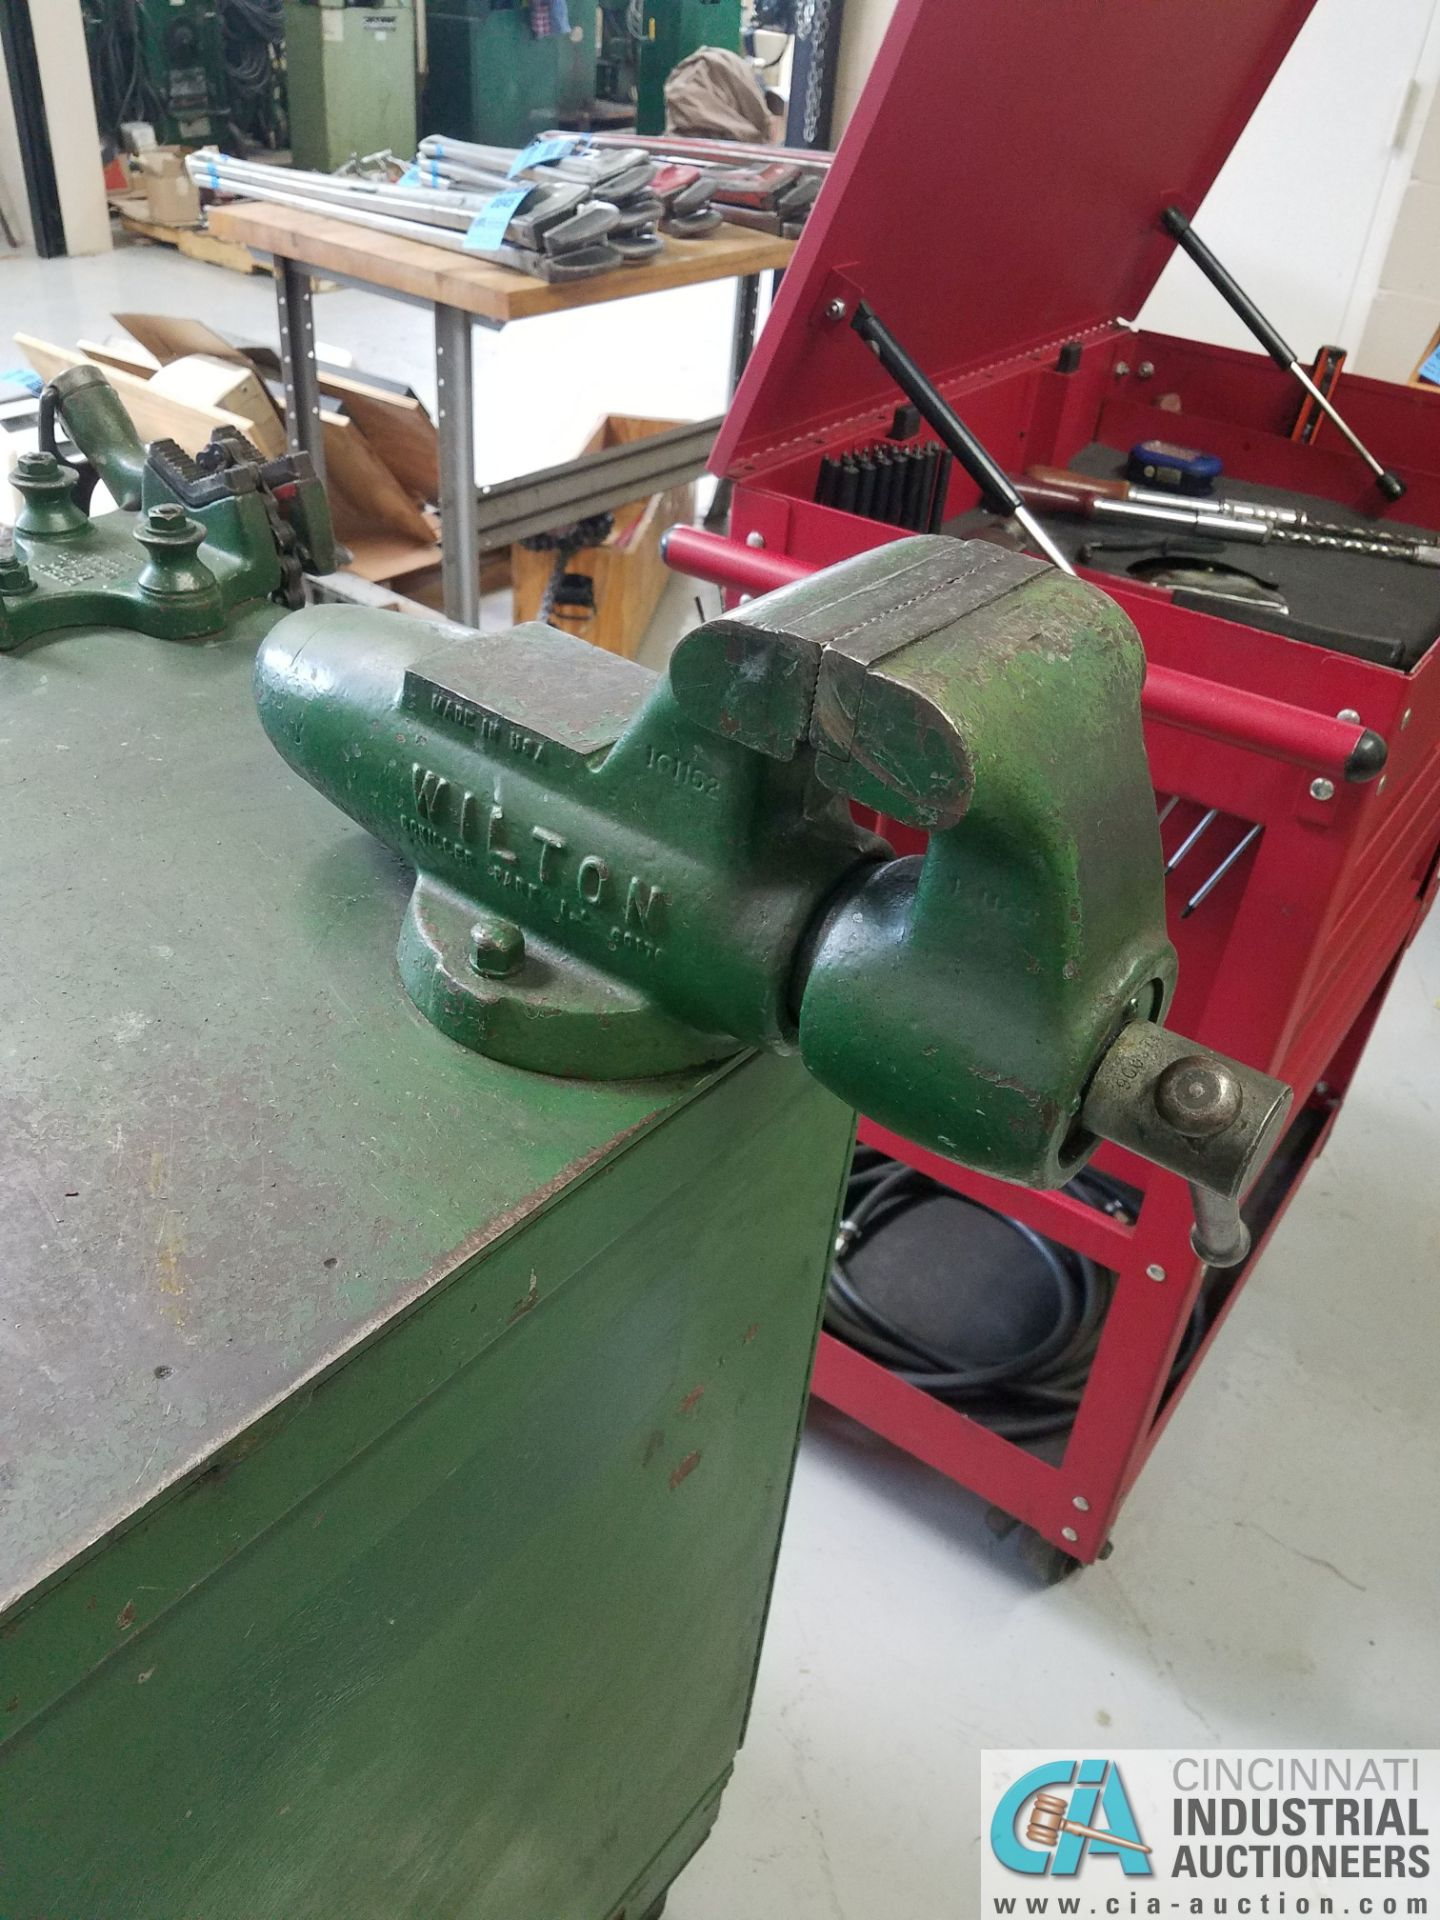 BROWN MODEL 250 TABLE MOUNTED SAW; S/N 034436, MOUNTED ON PORTABLE JOBBOX WITH 4-1/2 BENCH VISE - Image 5 of 6